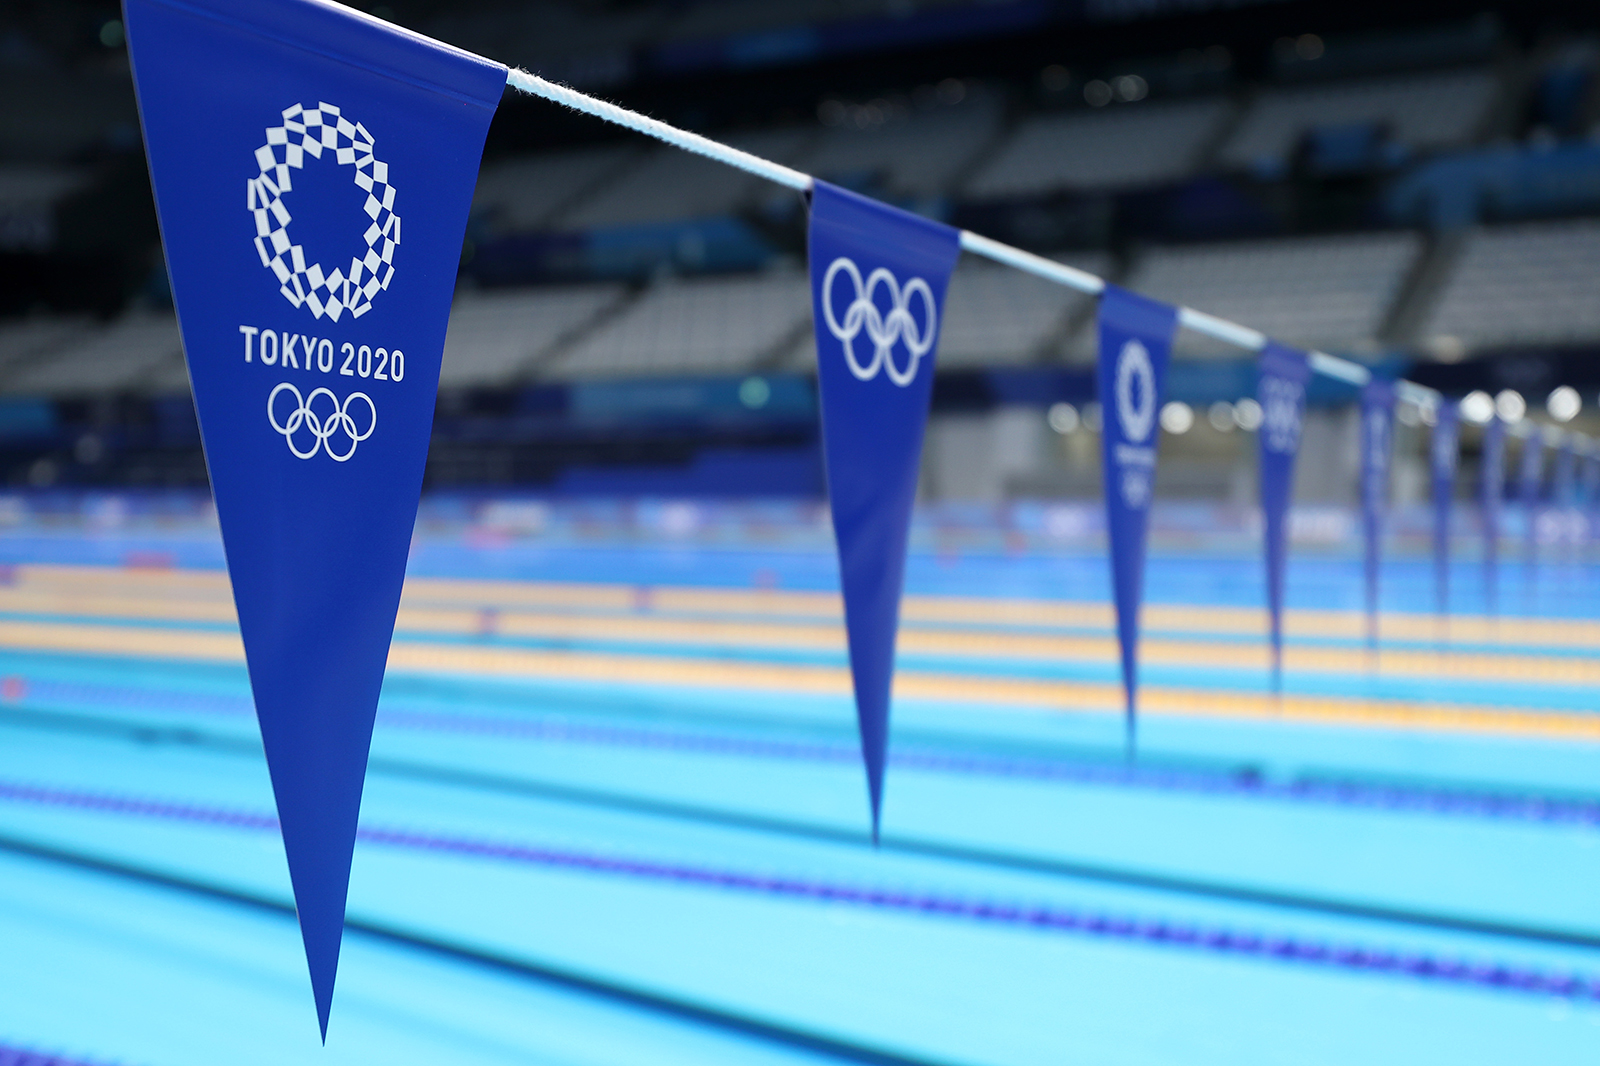 Flags hang over the pool during aquatics training at the Tokyo Aquatics Centre ahead of the Tokyo 2020 Olympic Games on July 22, in Tokyo, Japan.